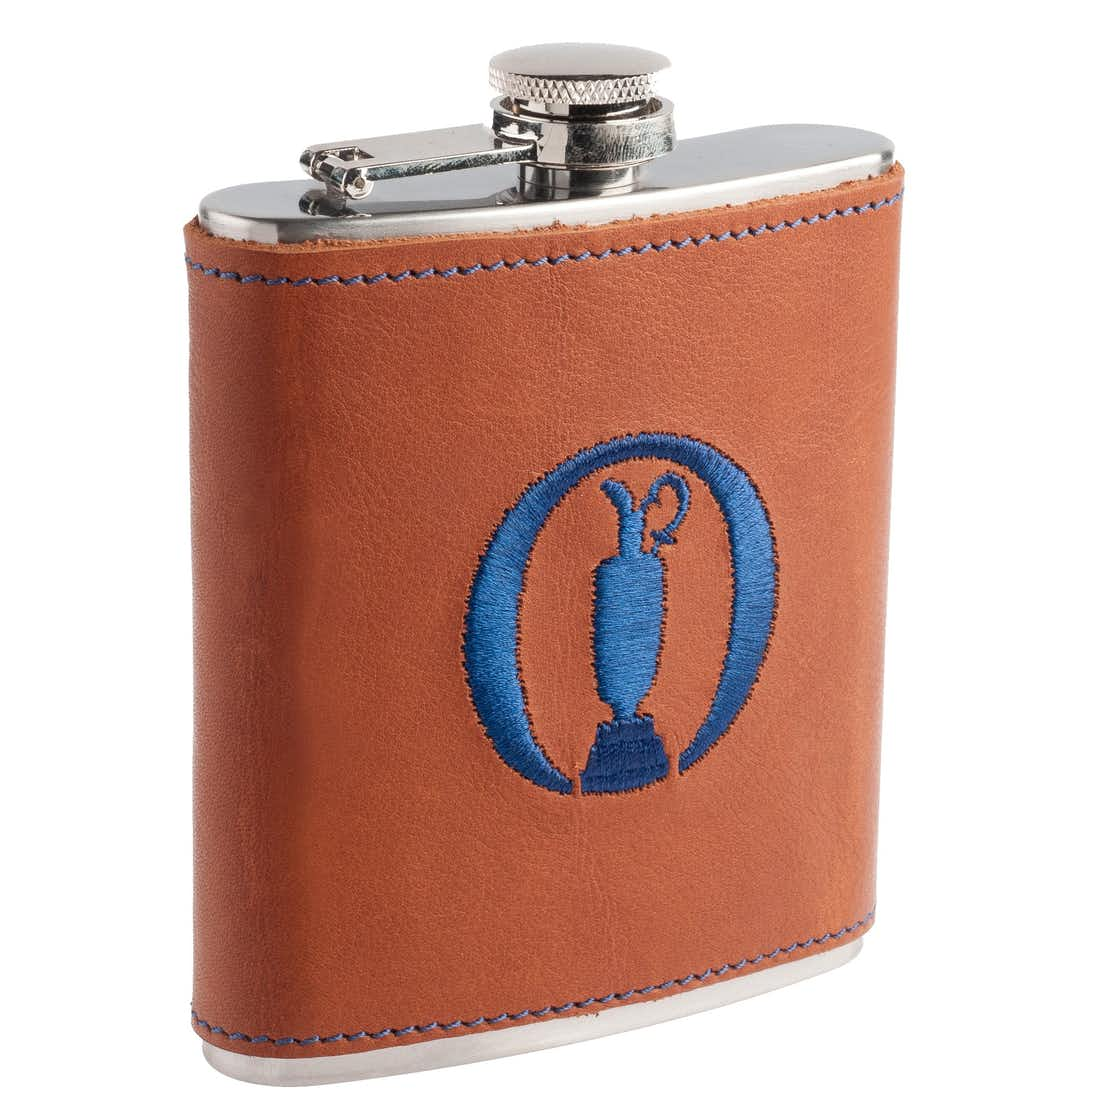 The Open Links & Kings Hip Flask - Brown